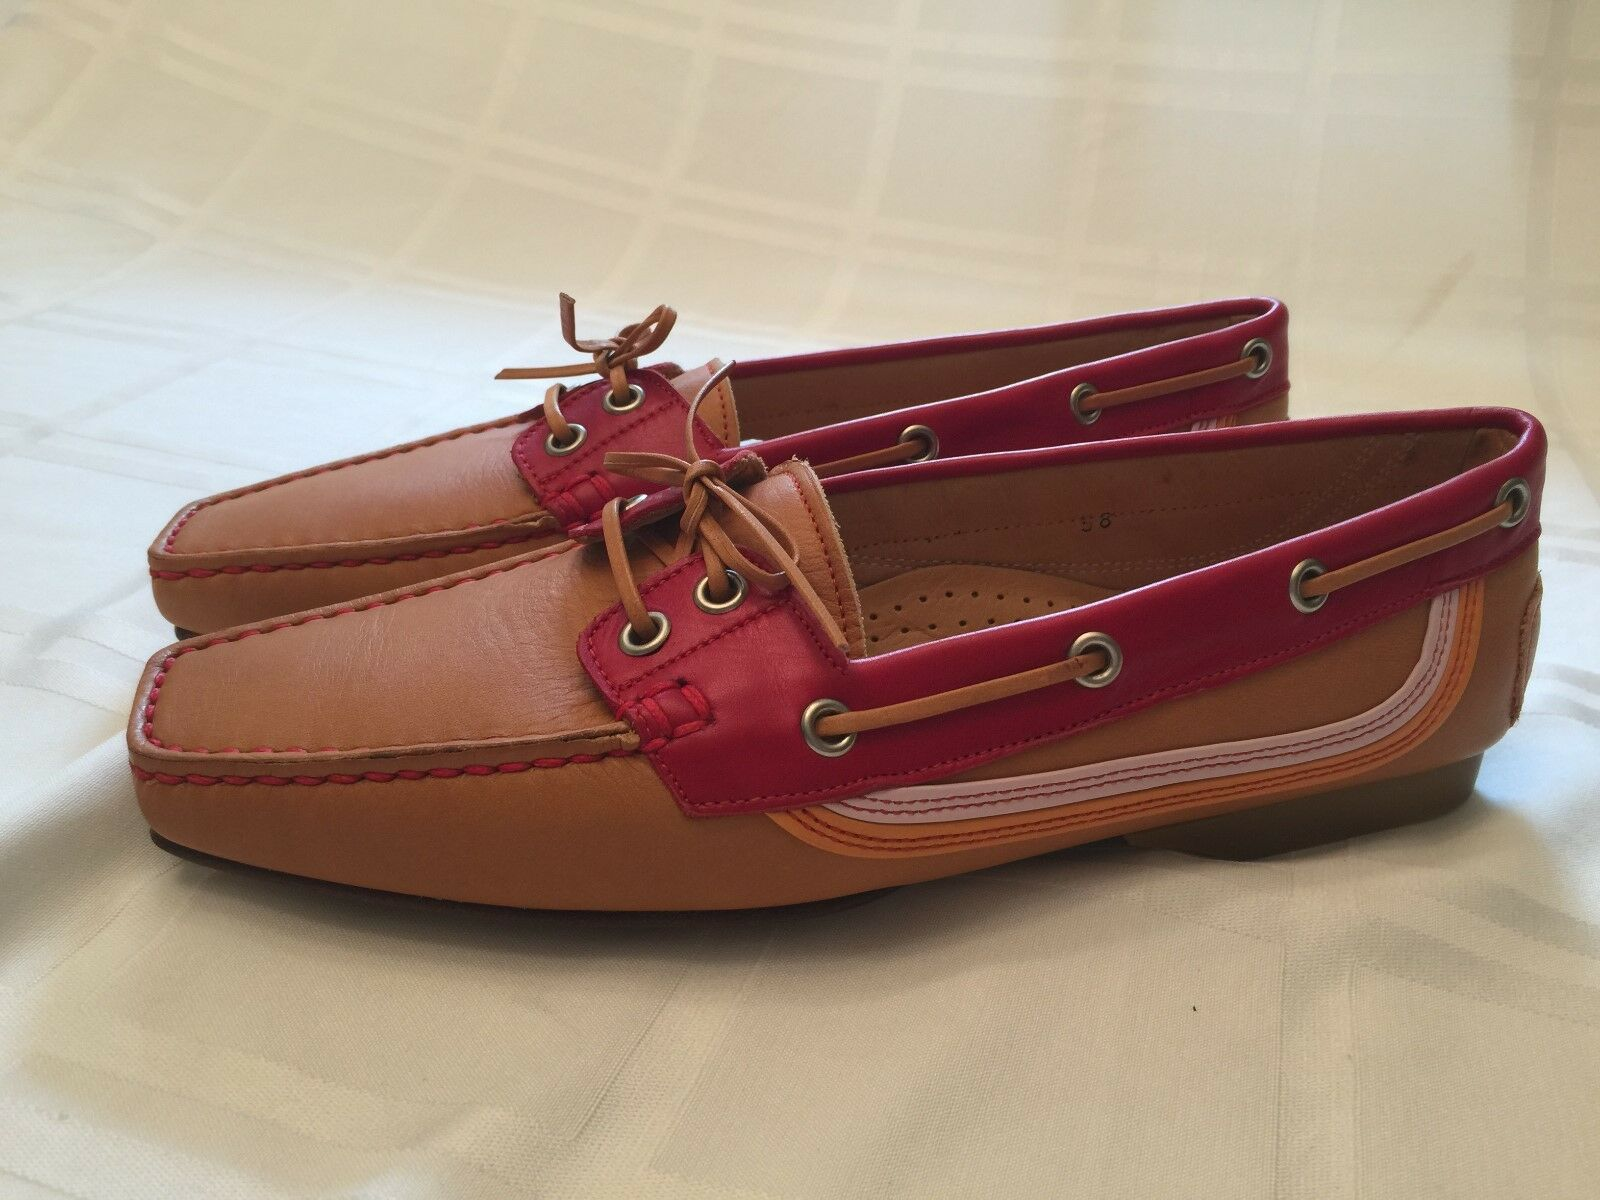 NEW Womens PRAERIE Italian Leather Moccasin shoes Red   Tan 38